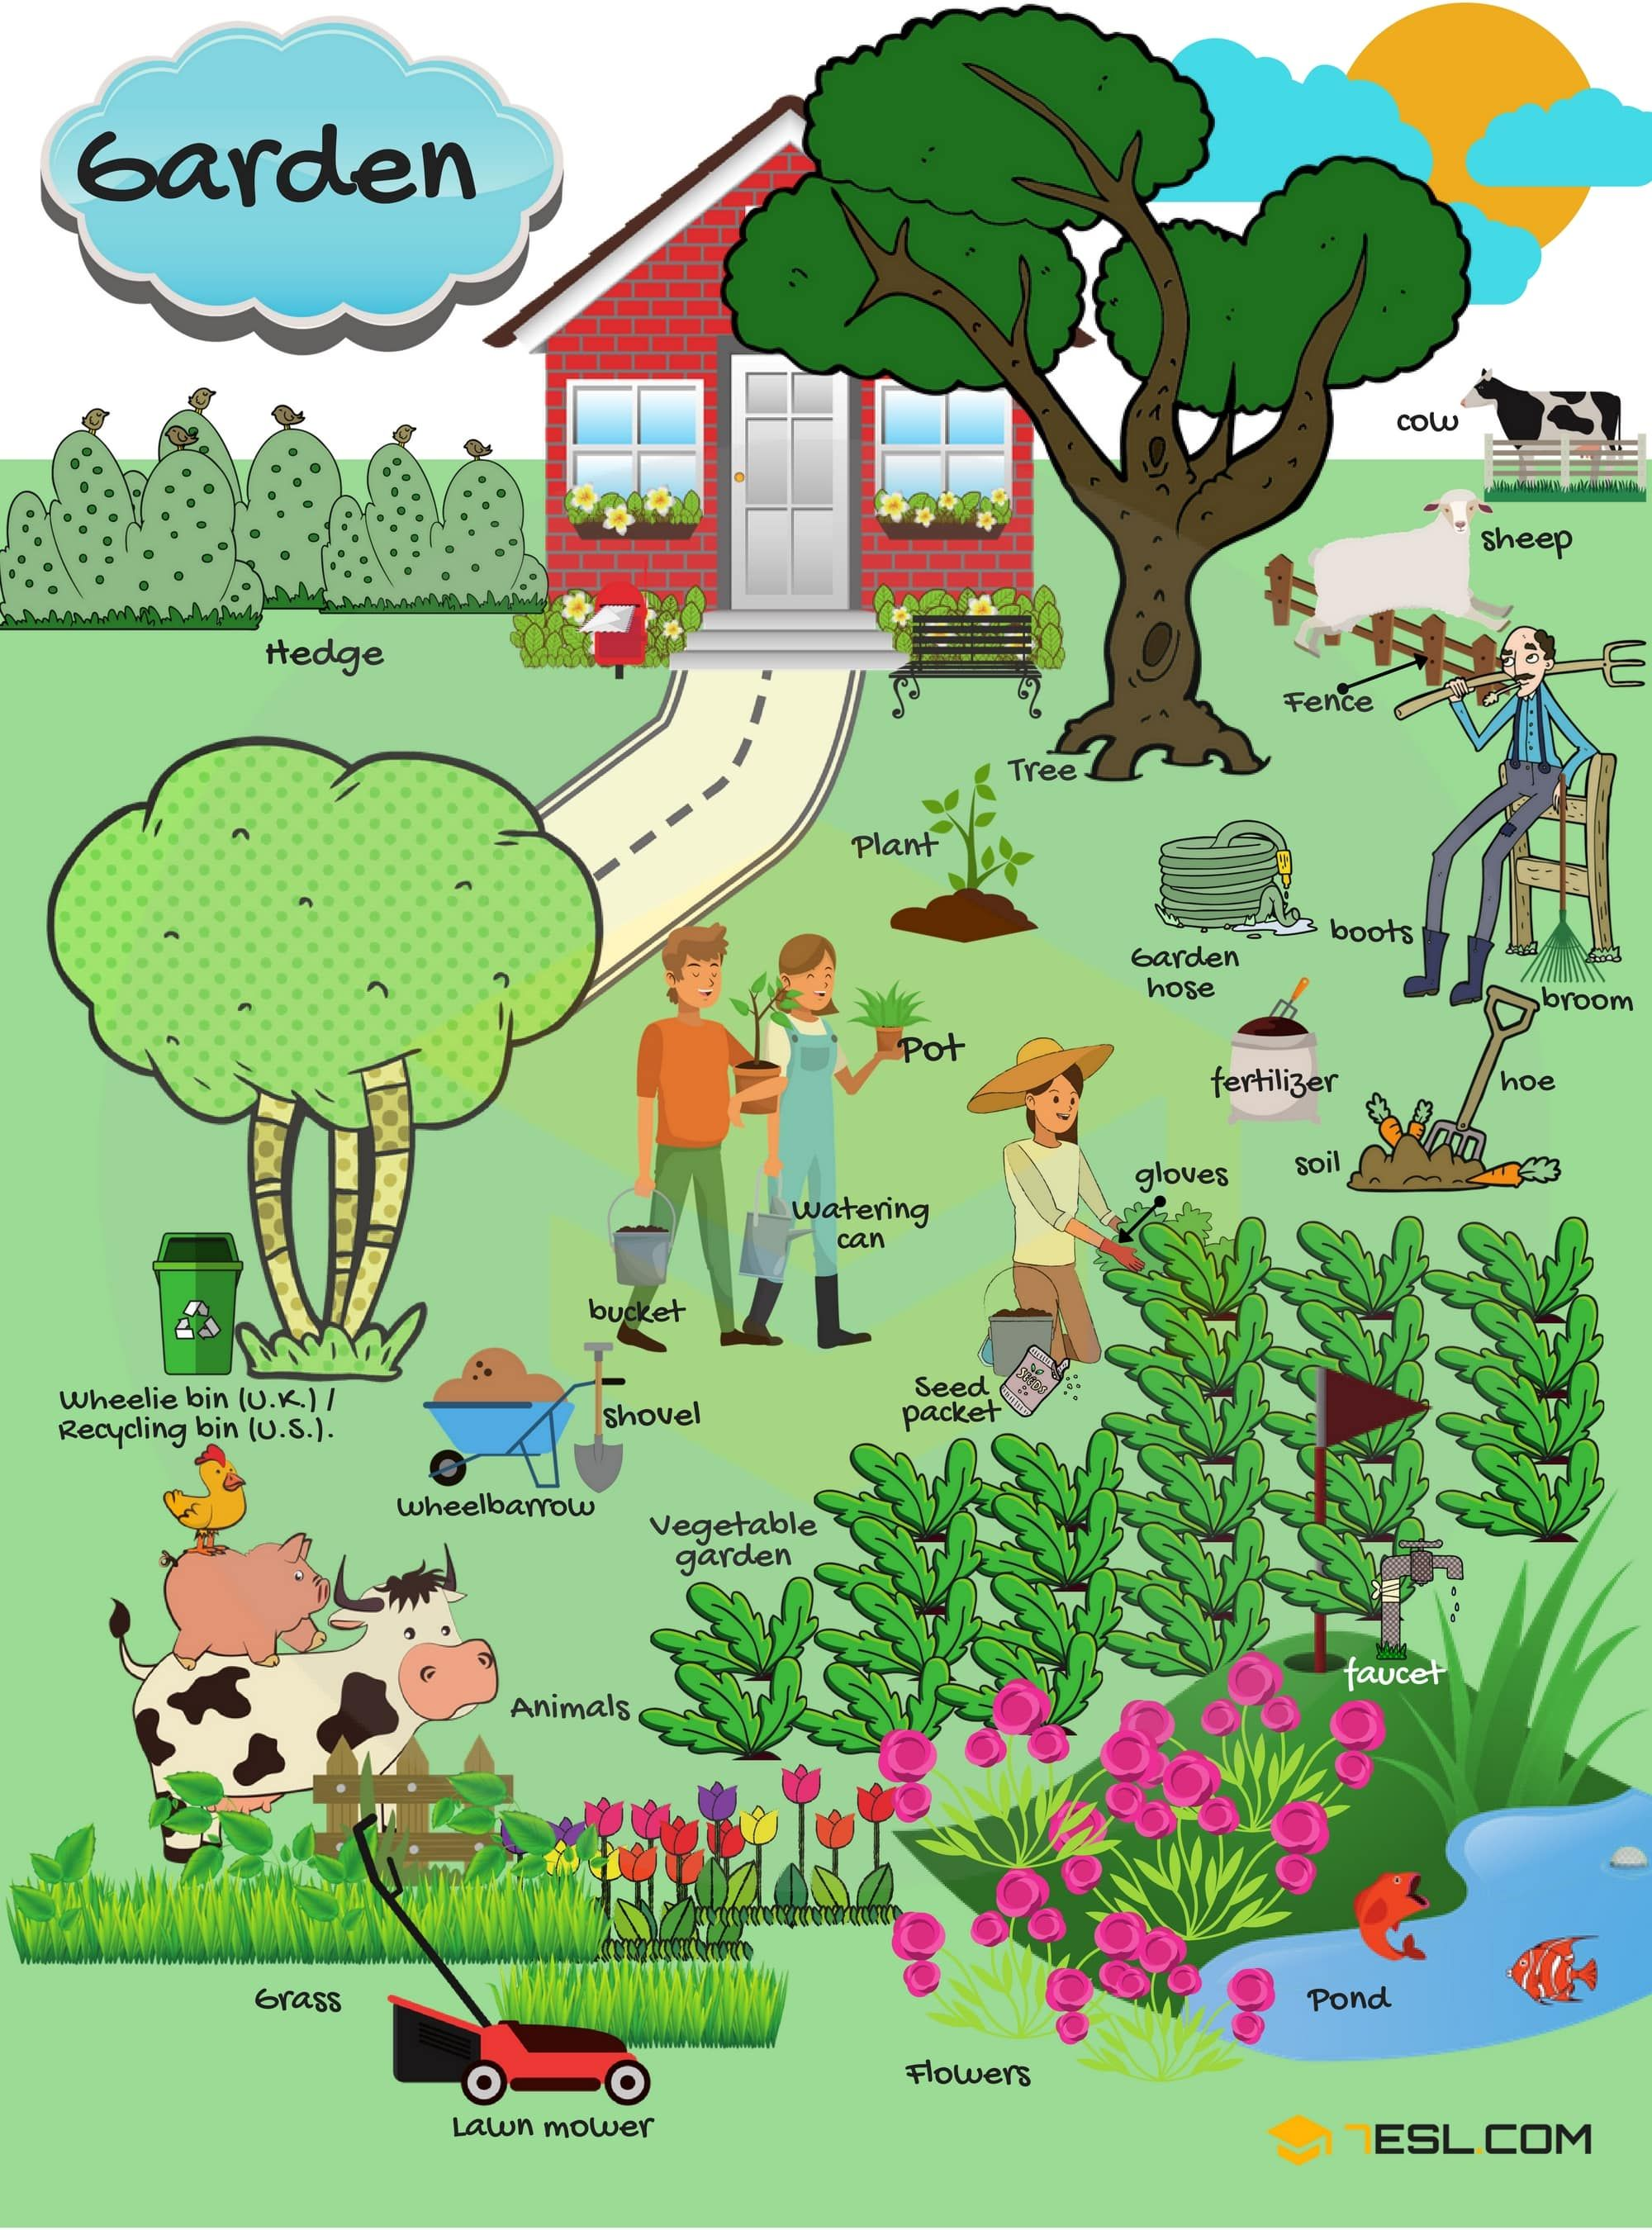 Garden Vocabulary Useful Gardening Terms With Pictures